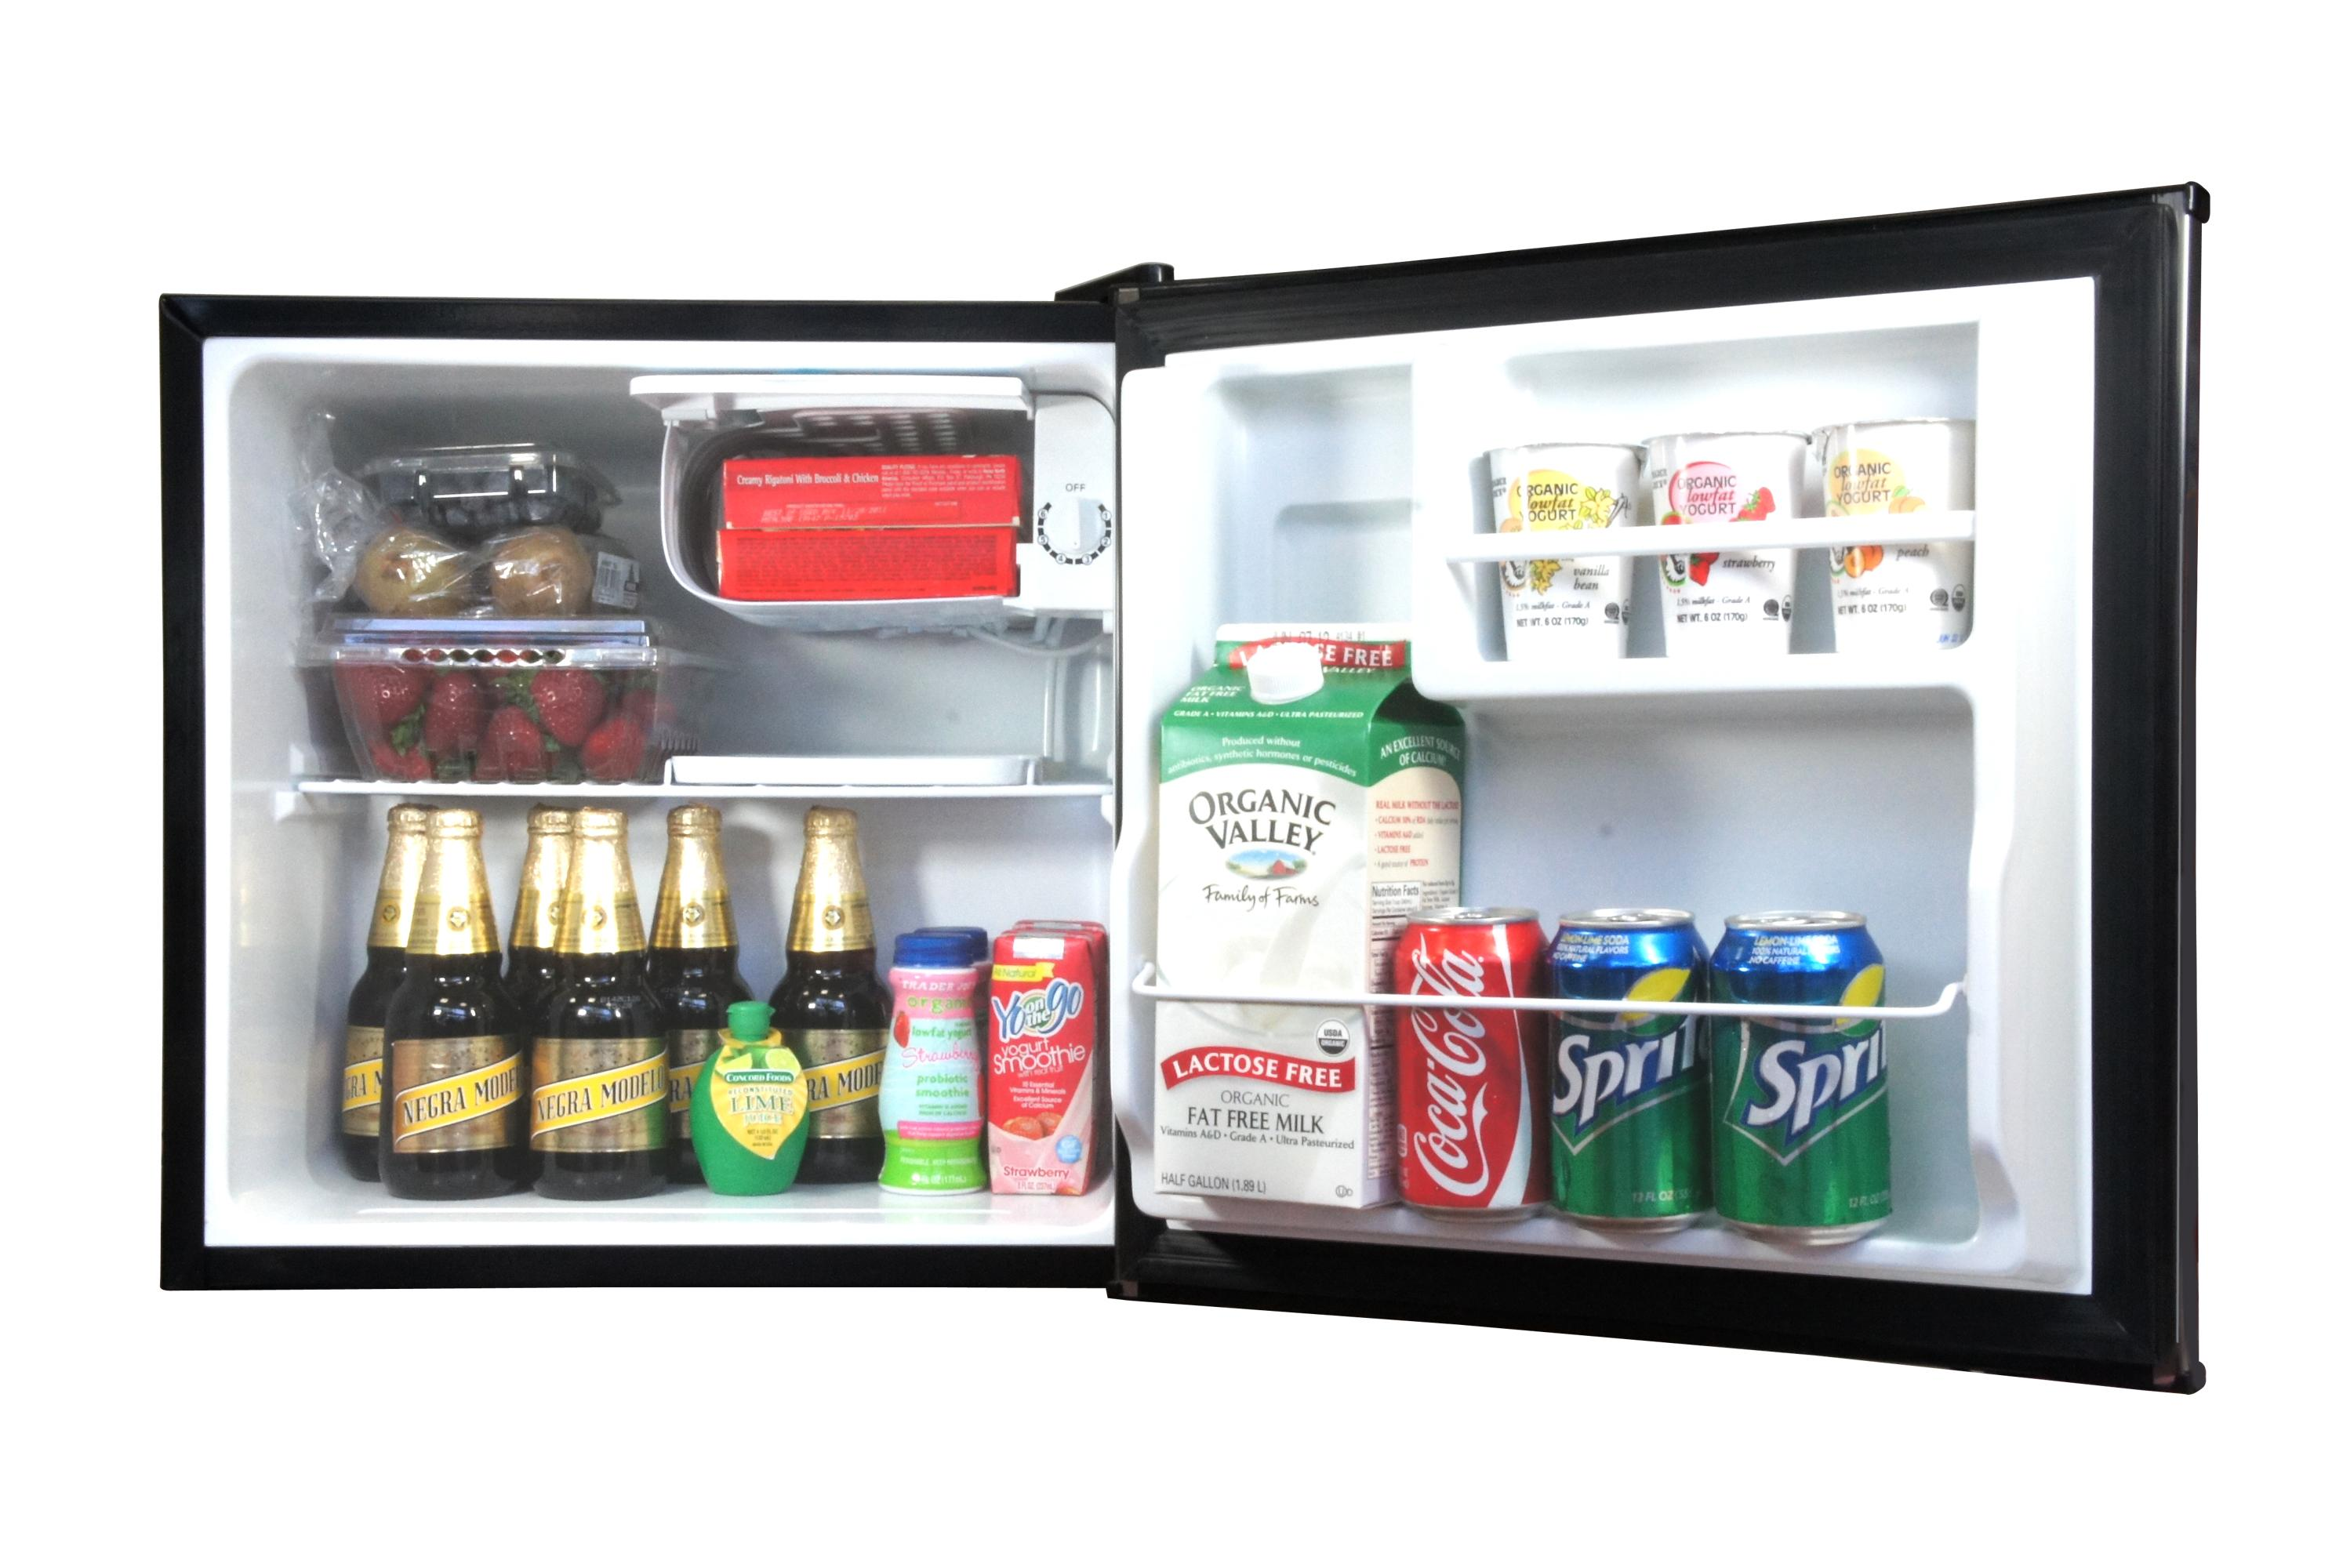 bar gumtree dimensions wine uk warmer fridge litre cabinet to camping mini price walmart for external tesco refrigerator converted desk cheap and bedroom inspired kitchen adaptor cooler costco with travel amazon portable fridges